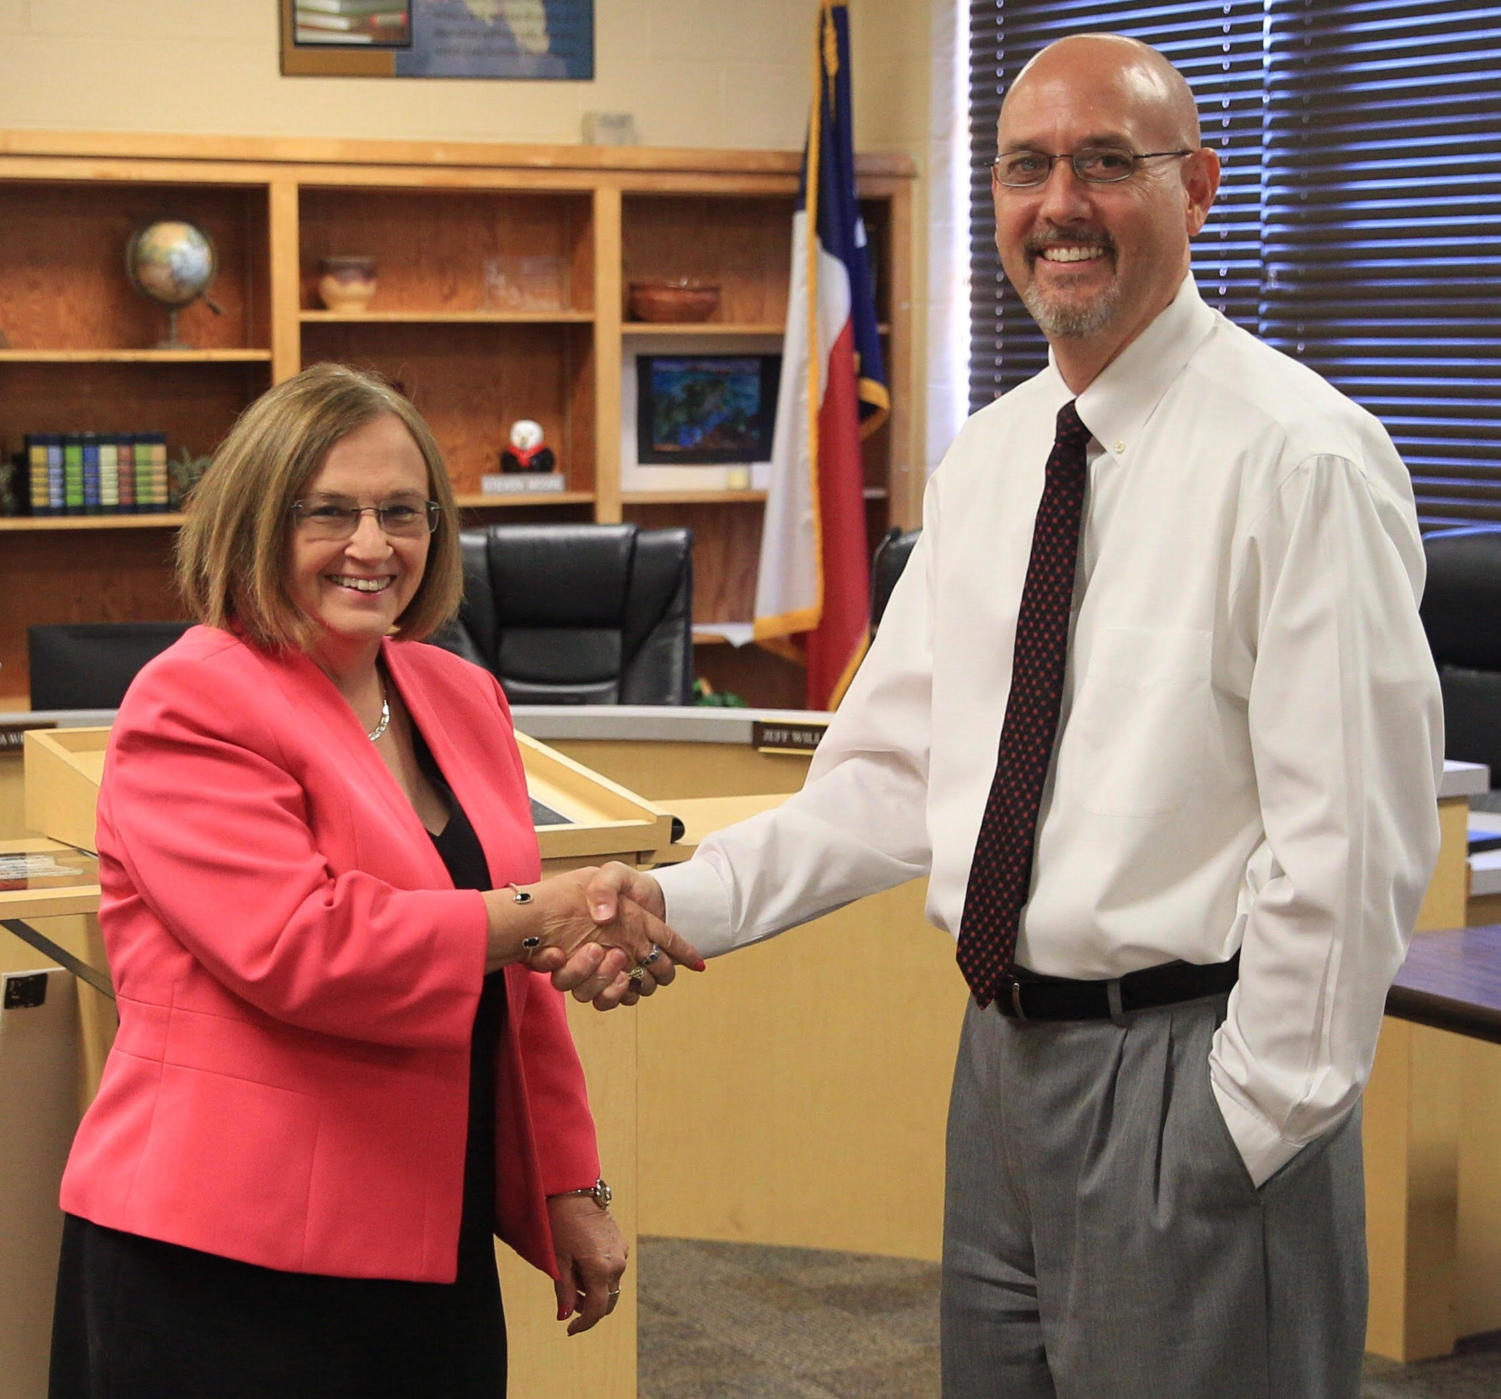 Superintendant Dr. Wright and Mr. King celebrate his announcement as new principal.